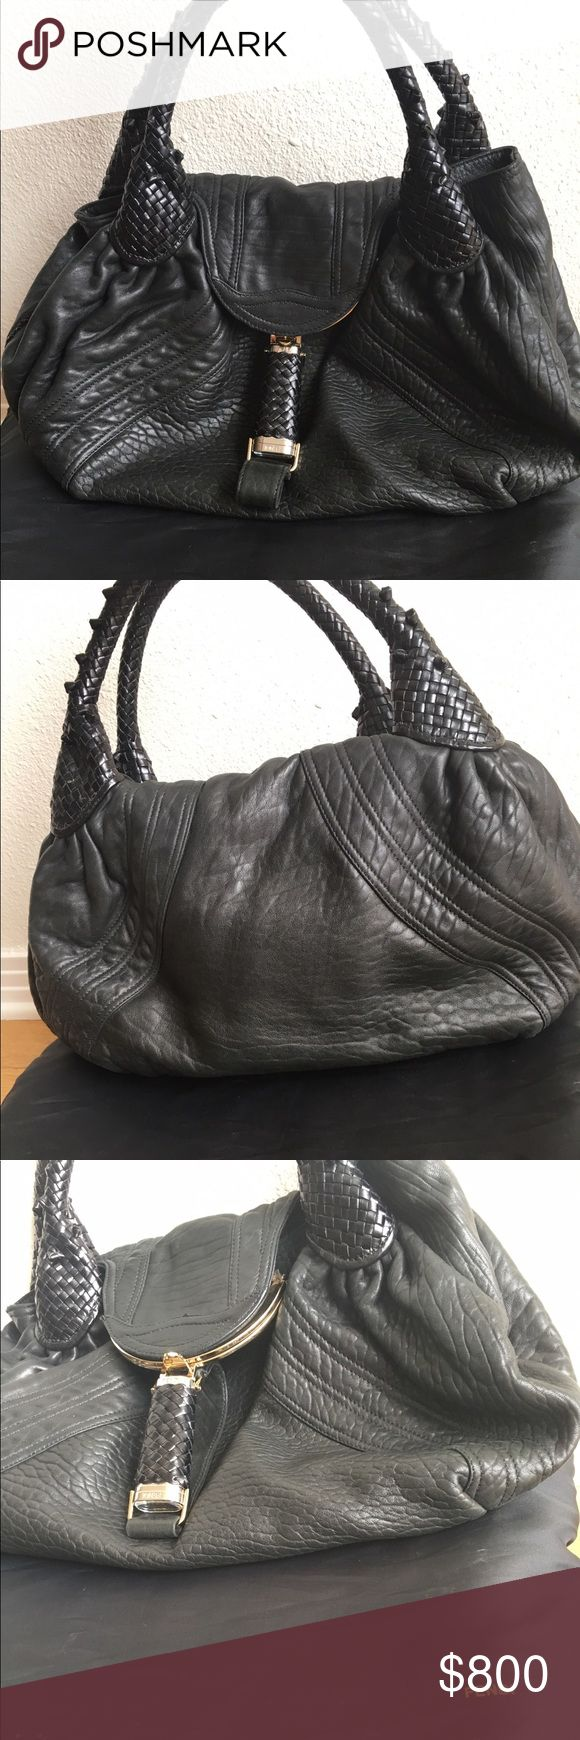 Authentic black Fendi Spy Bag This black Fendi spy bag is brand new. I have only used this spy bag a couple of times. It has been sitting in a dust bag and there is no damage at all. It looks brand new and comes with its original dust bag. All black and gold accents. This is the bigger version. Fendi Bags Shoulder Bags